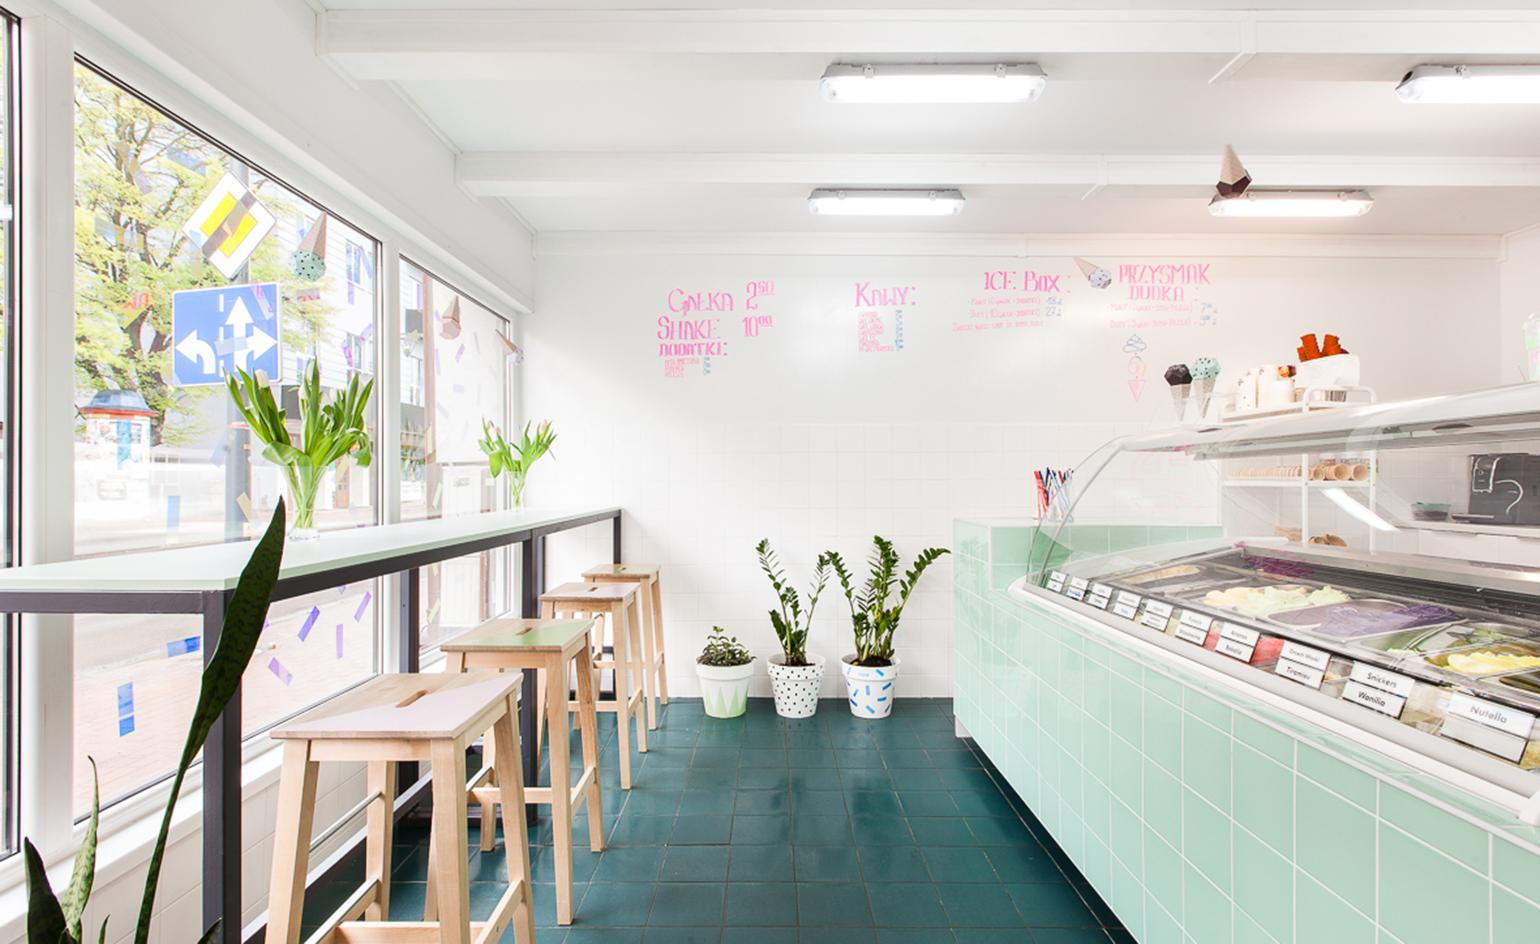 Lody Dudek Tasks Architects With New Parlour Design